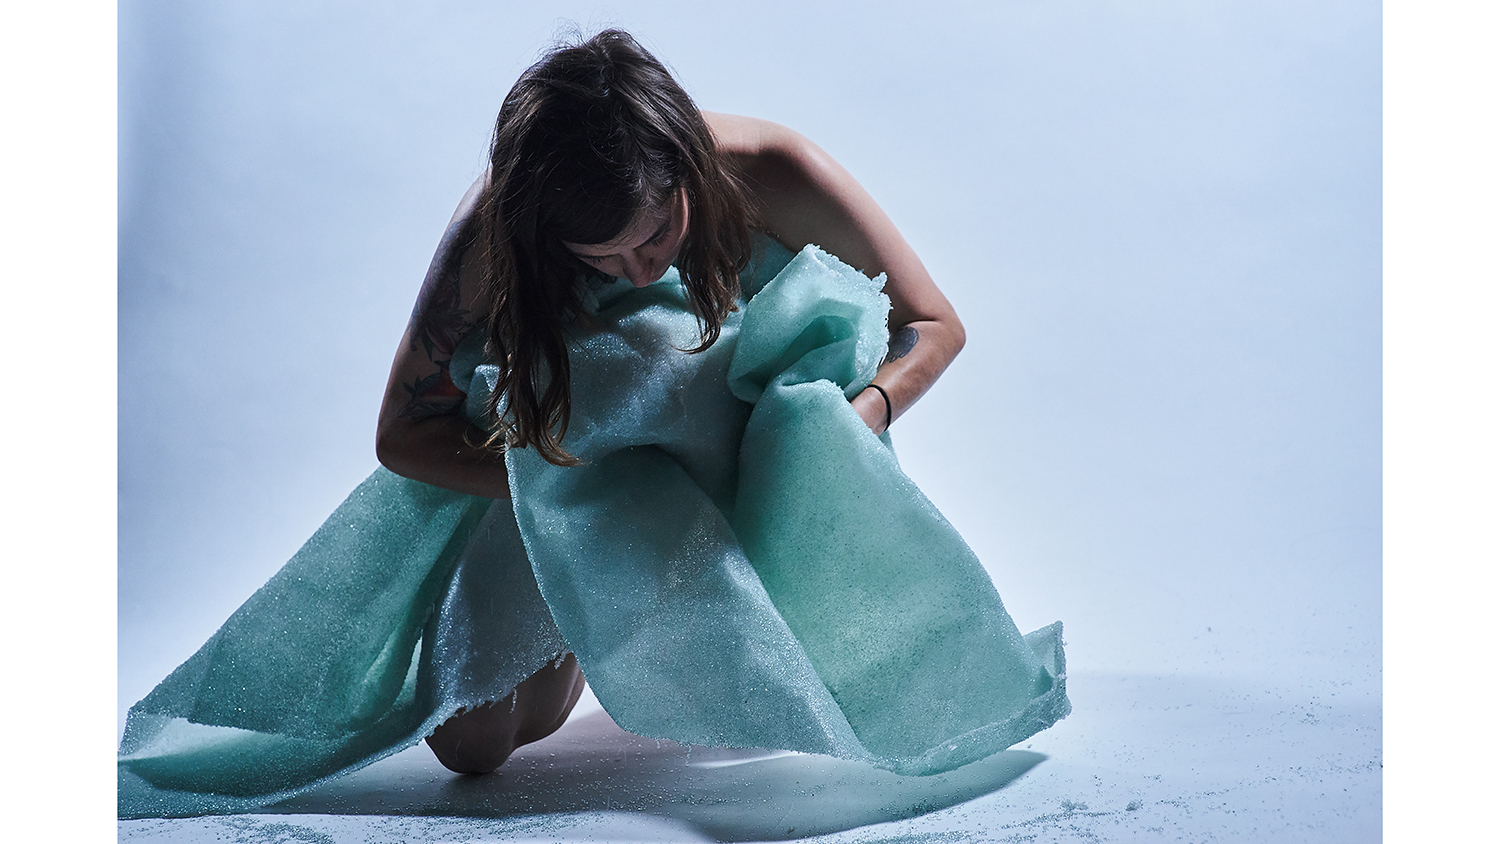 A glass blanket by Gracia Nash, who uses glass as performance art.